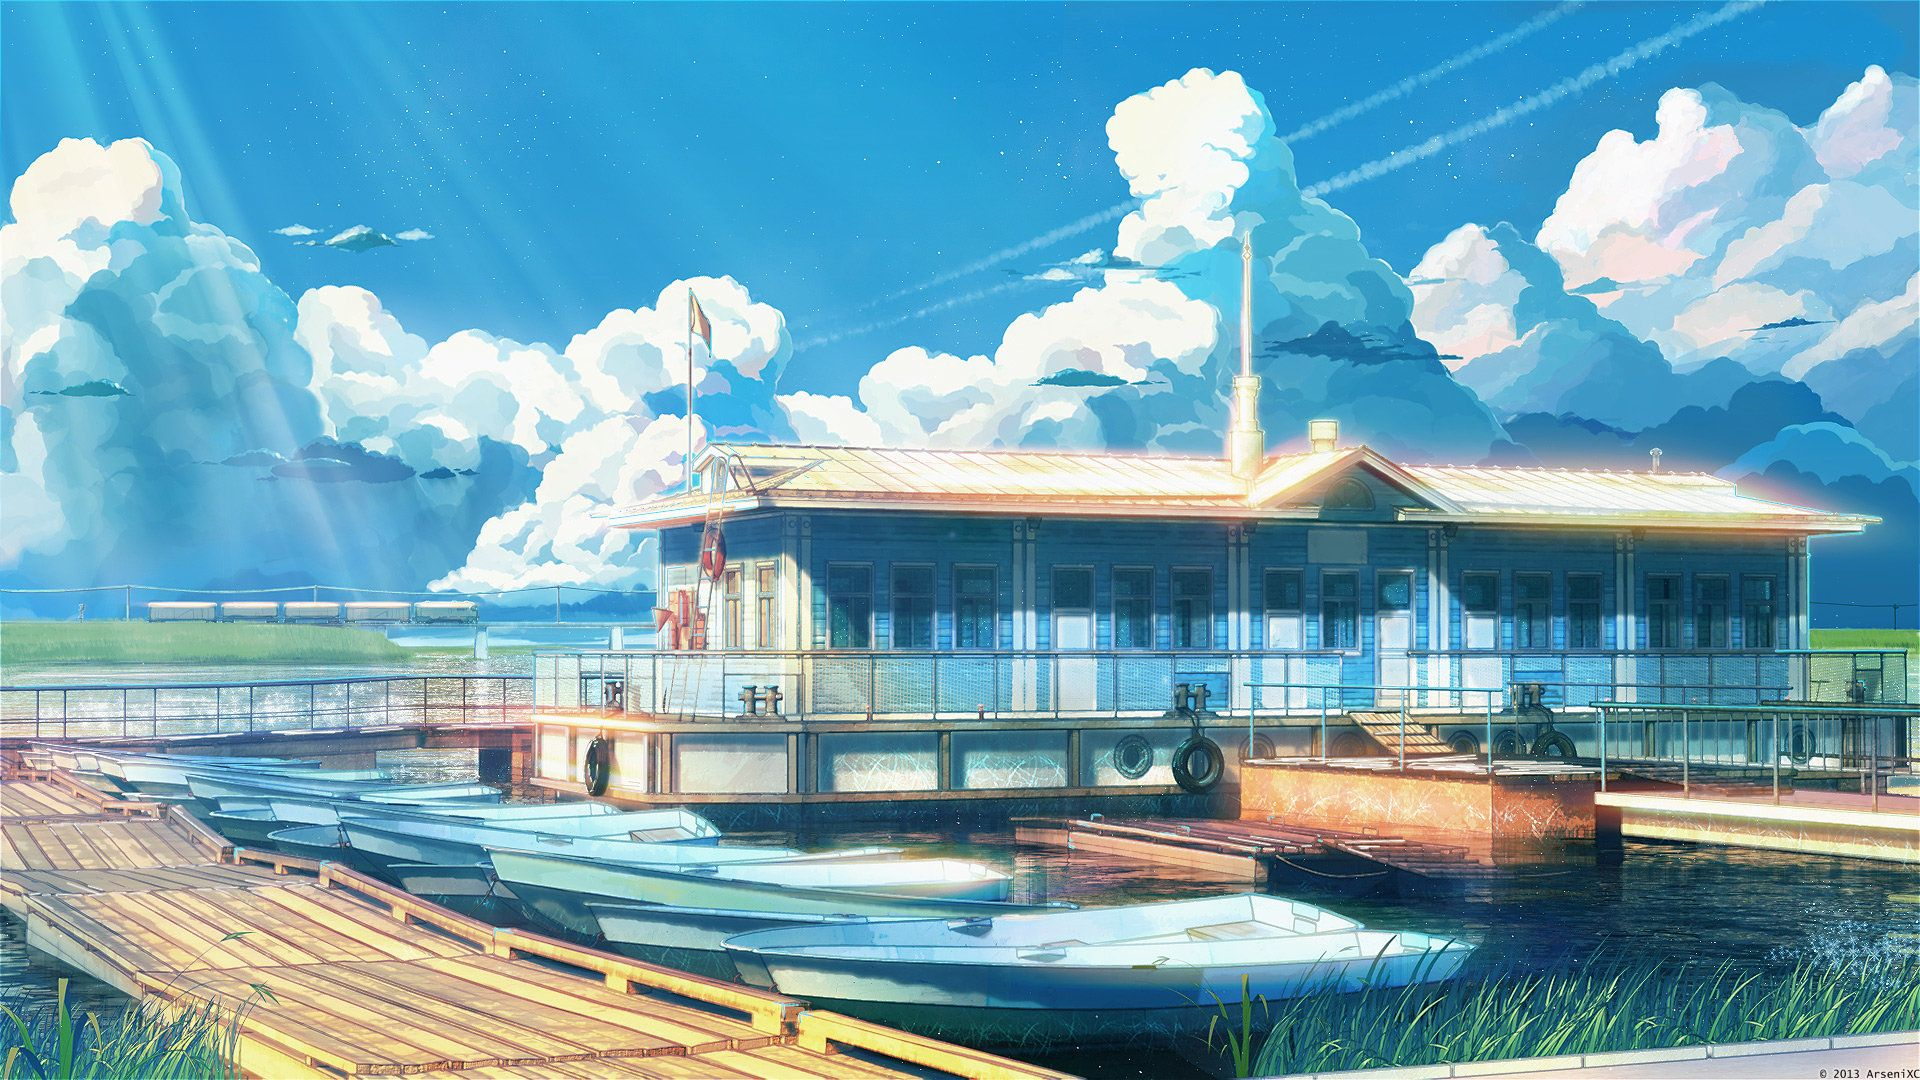 Summer Camp Backgrounds Arseniy Chebynkin Anime Scenery Wallpaper Anime Scenery Scenery Wallpaper